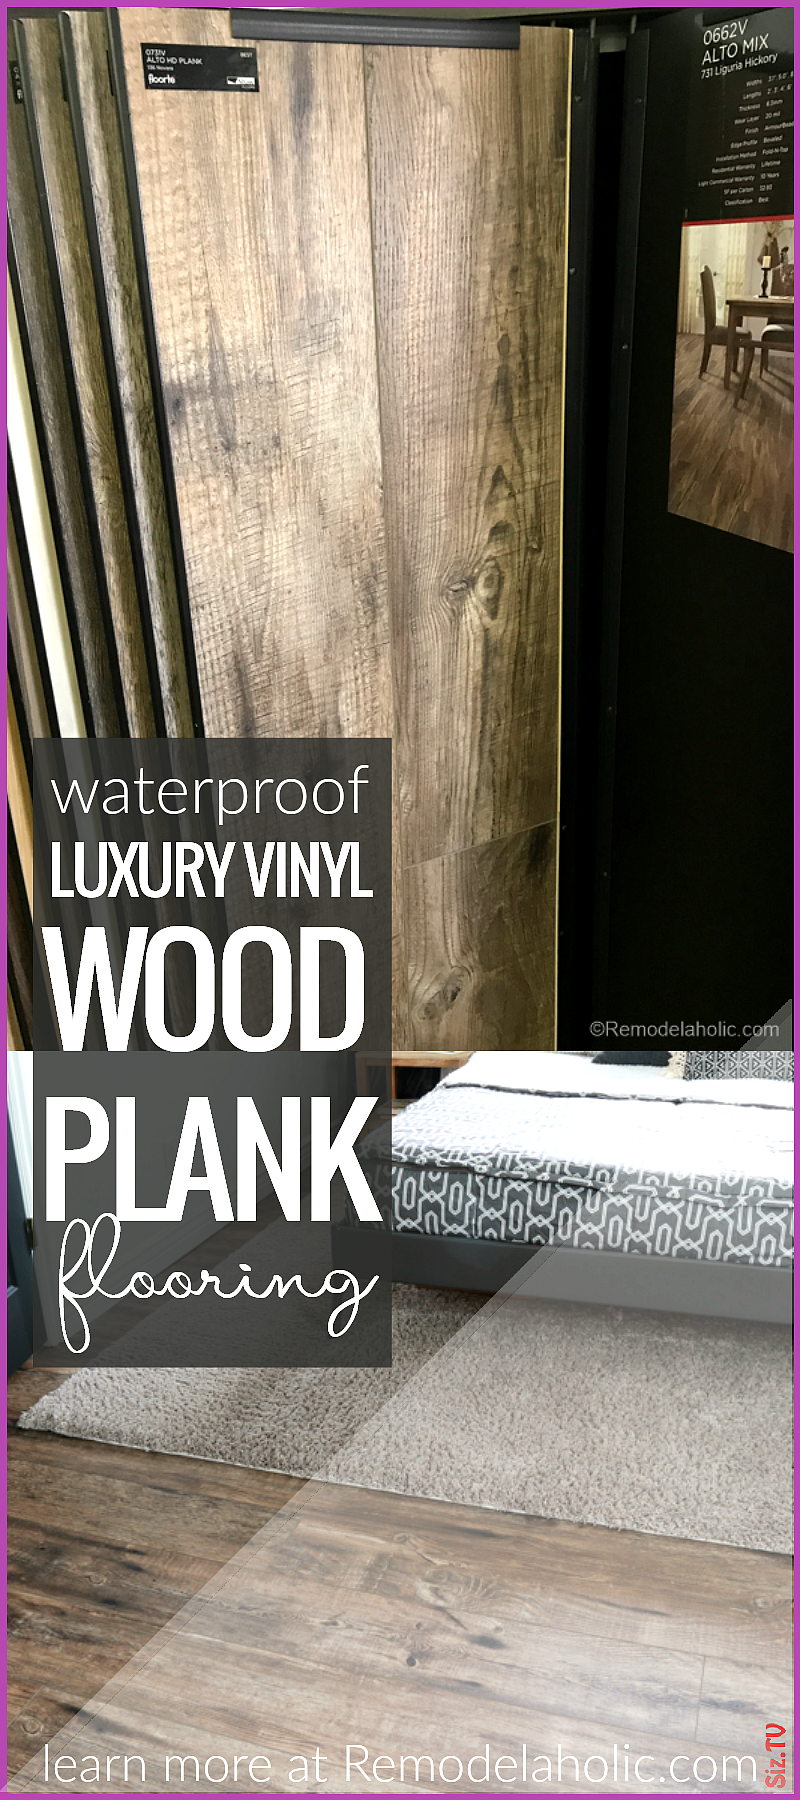 A new project with NEW luxury vinyl wood plank floors A